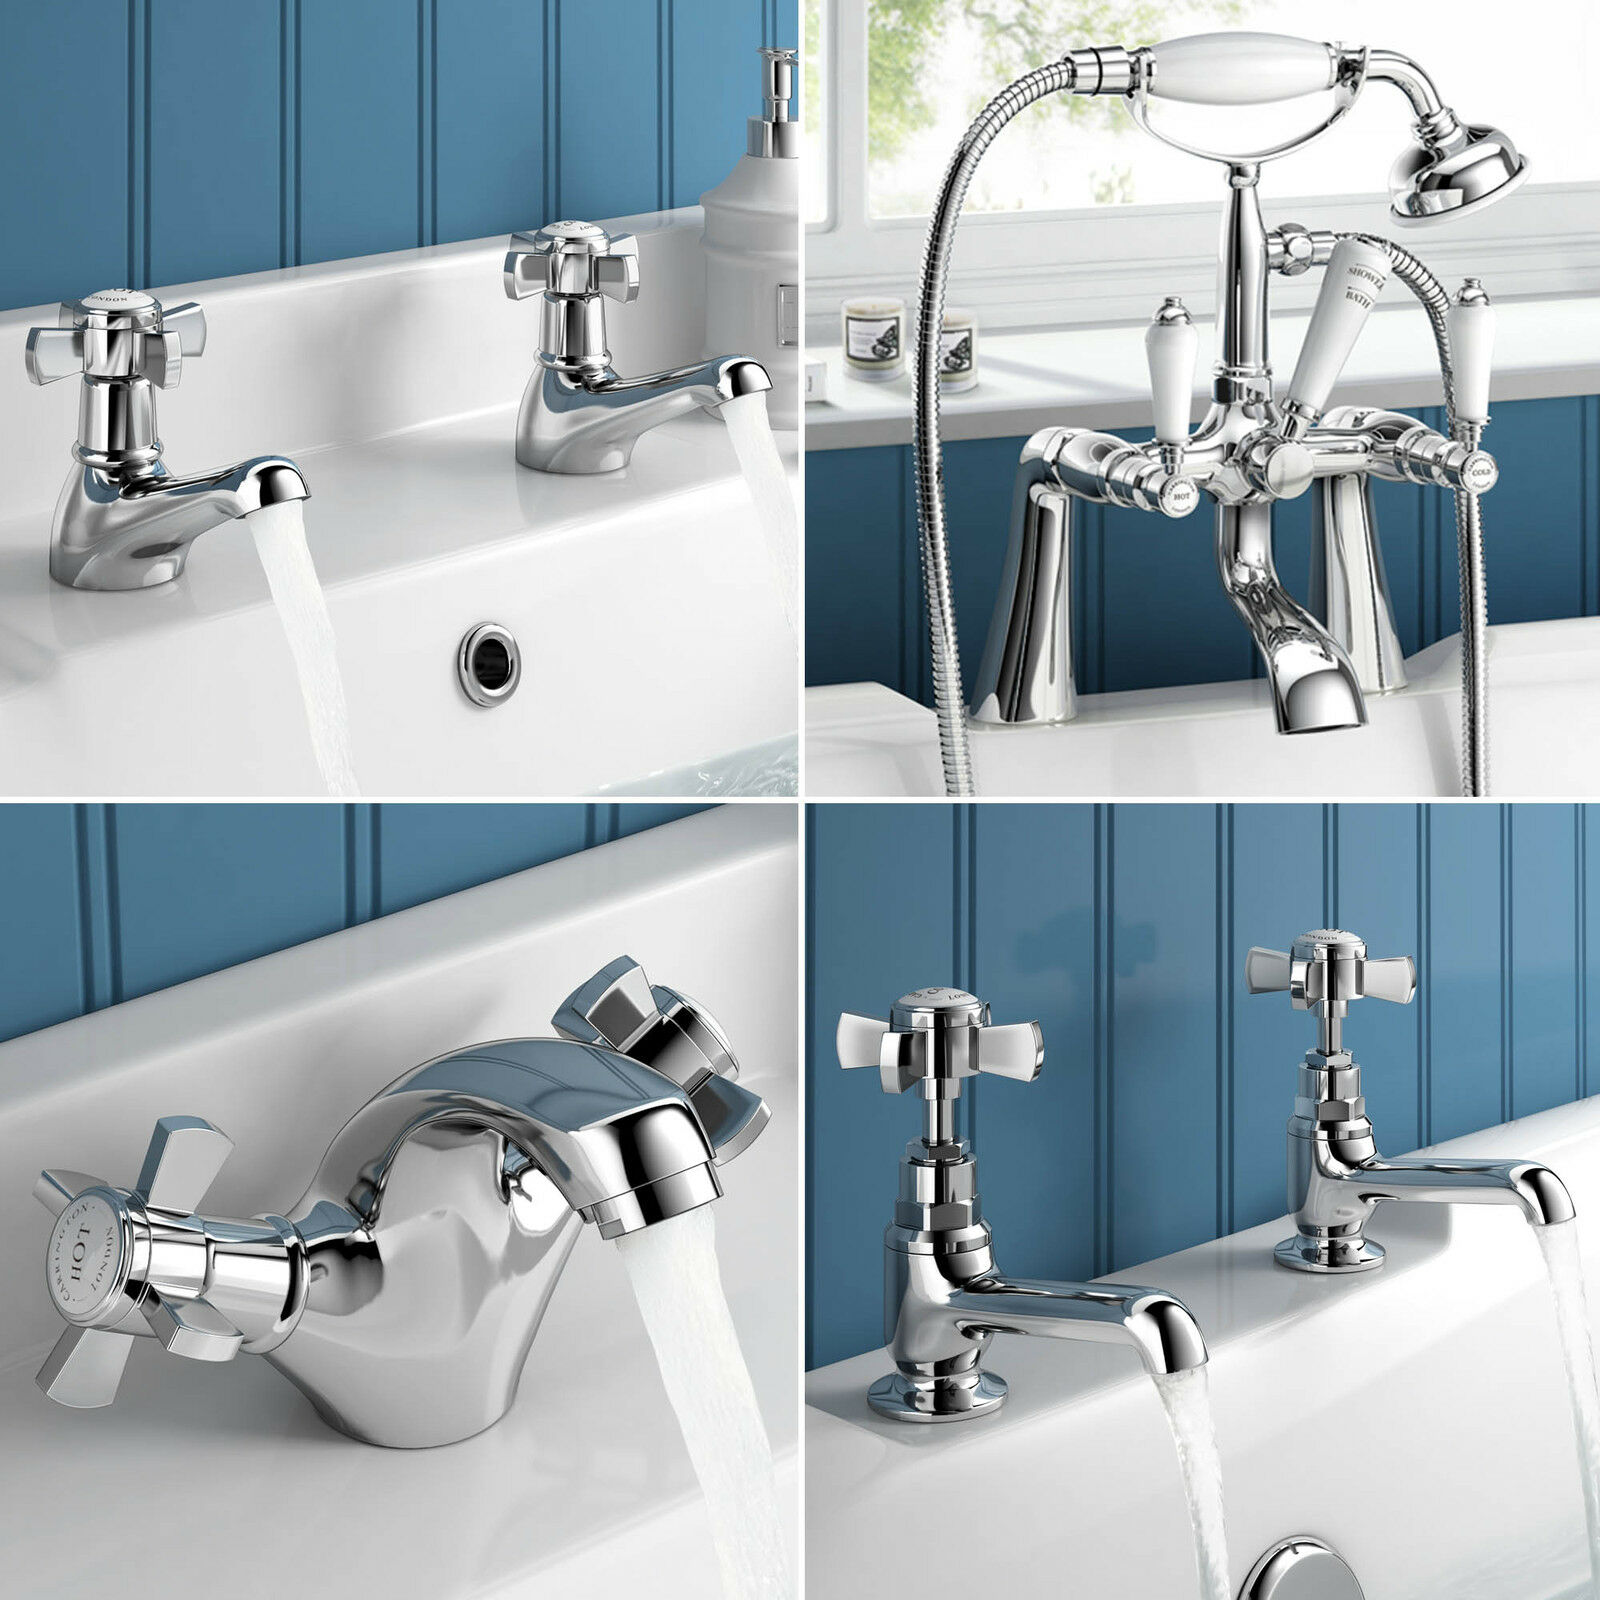 traditional hastings luxury bathroom taps basin mixer